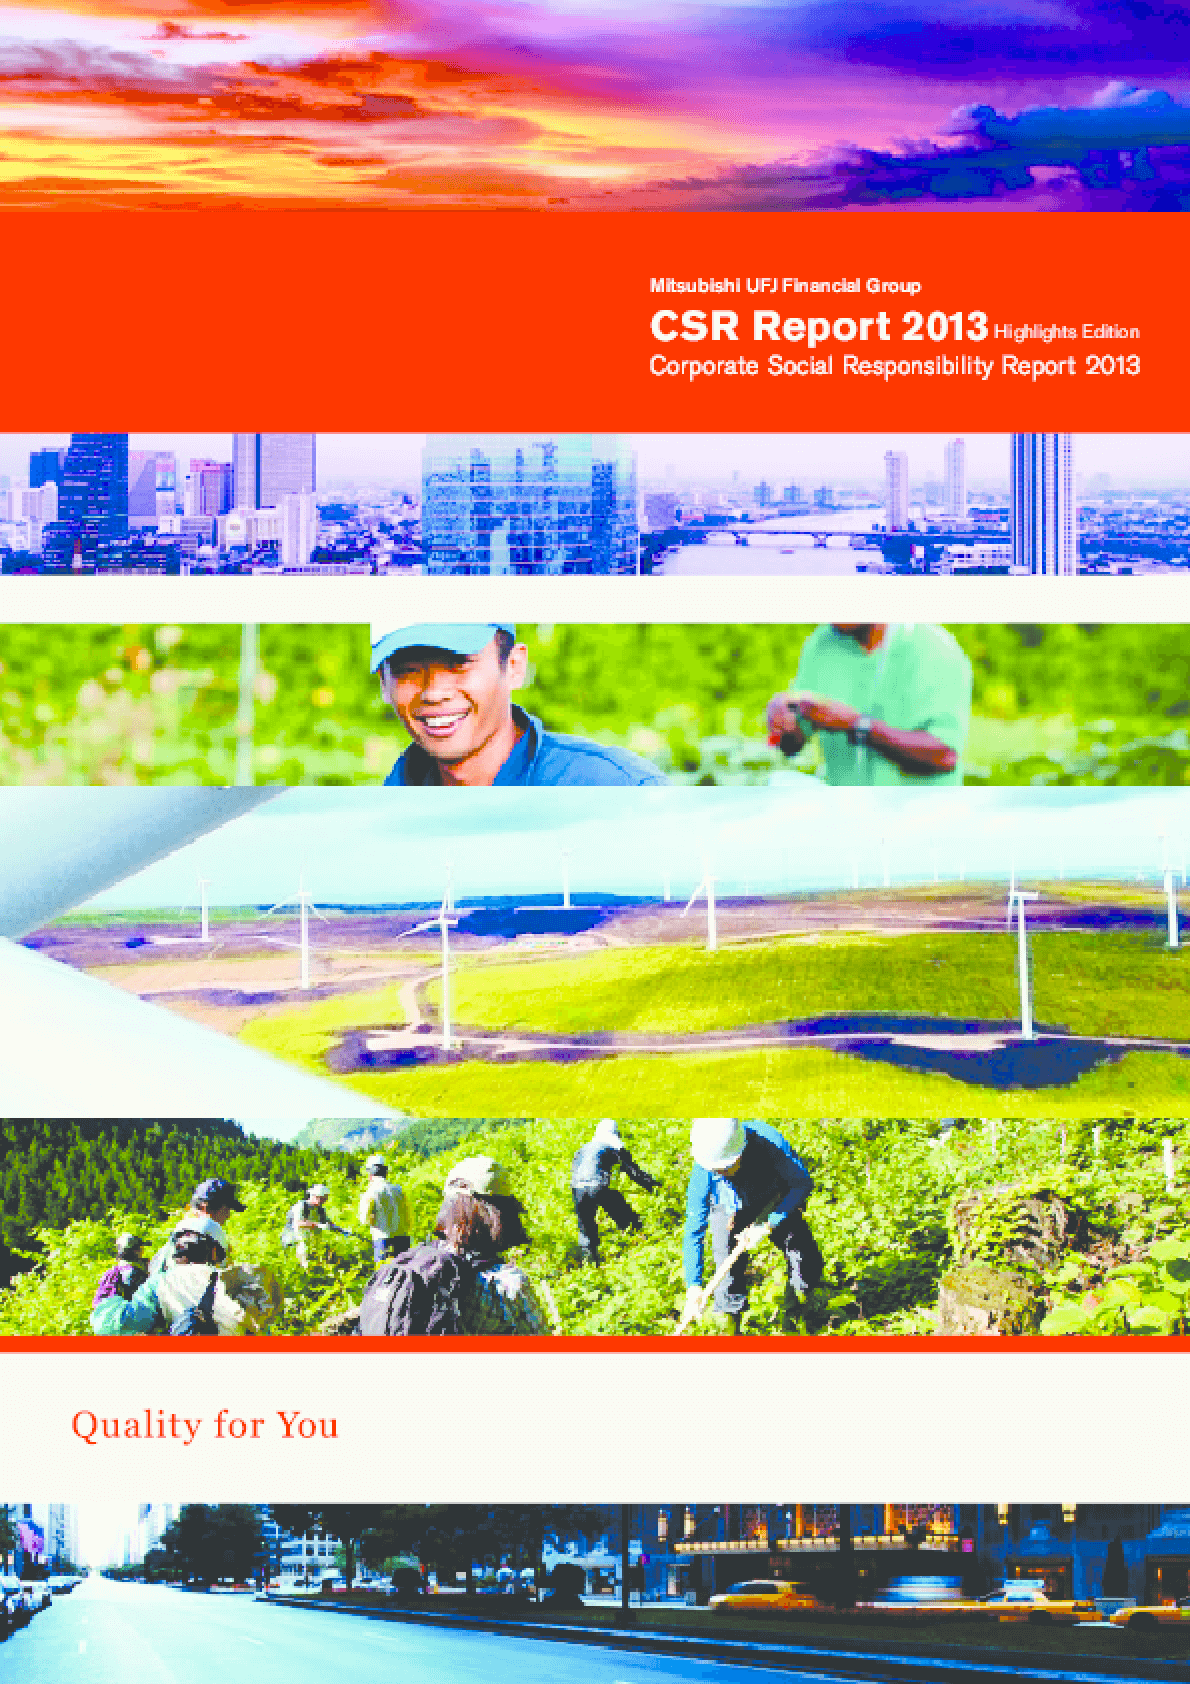 Mitsubishi UFJ Financial Group: Corporate Social Responsibility Report 2013- Highlights Edition